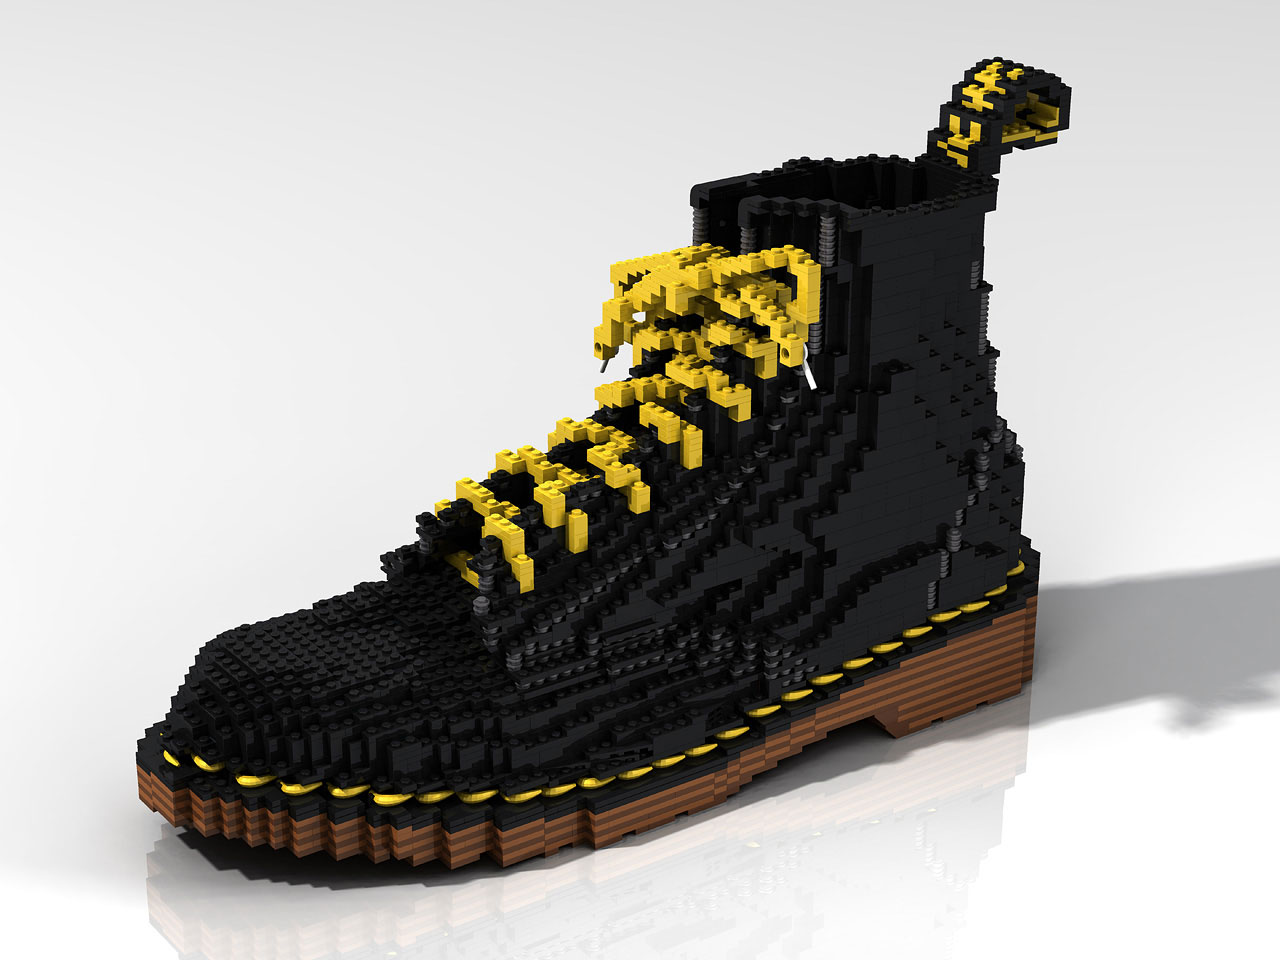 dr-martens-shoes-lego-amida-04-left-.jpg